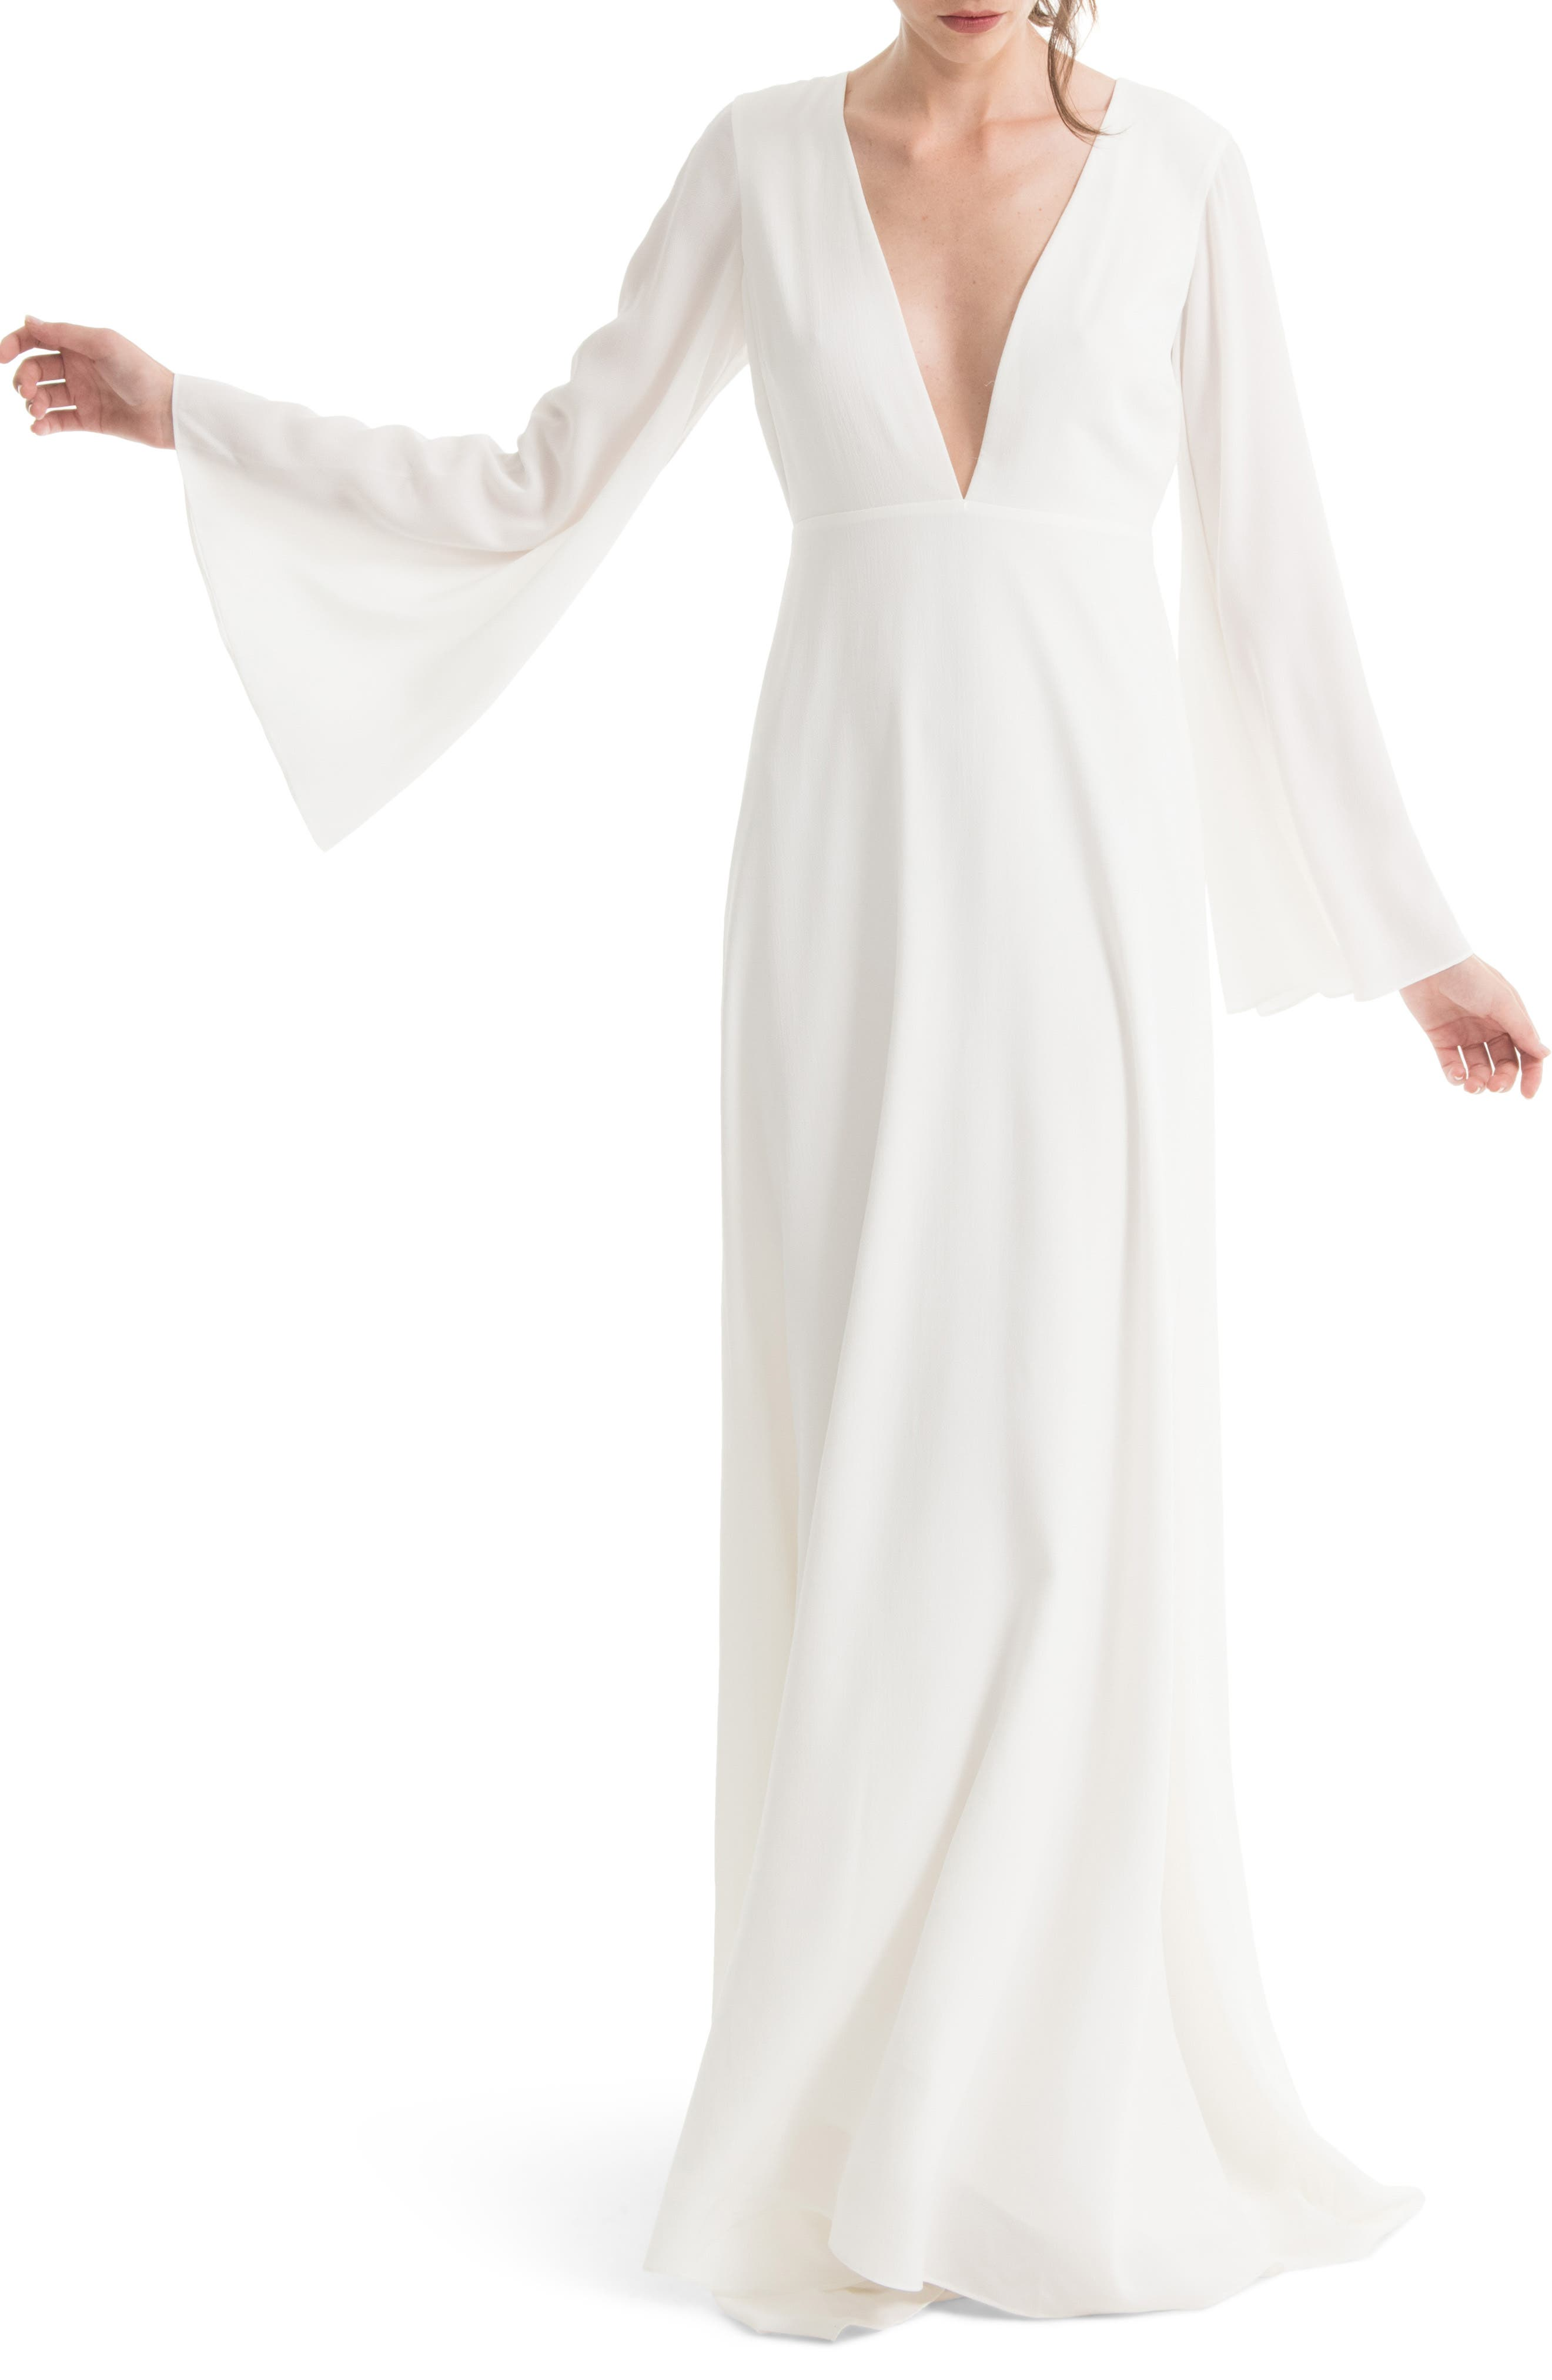 JOANNA AUGUST Stevie Bell Sleeve A-Line Gown in White